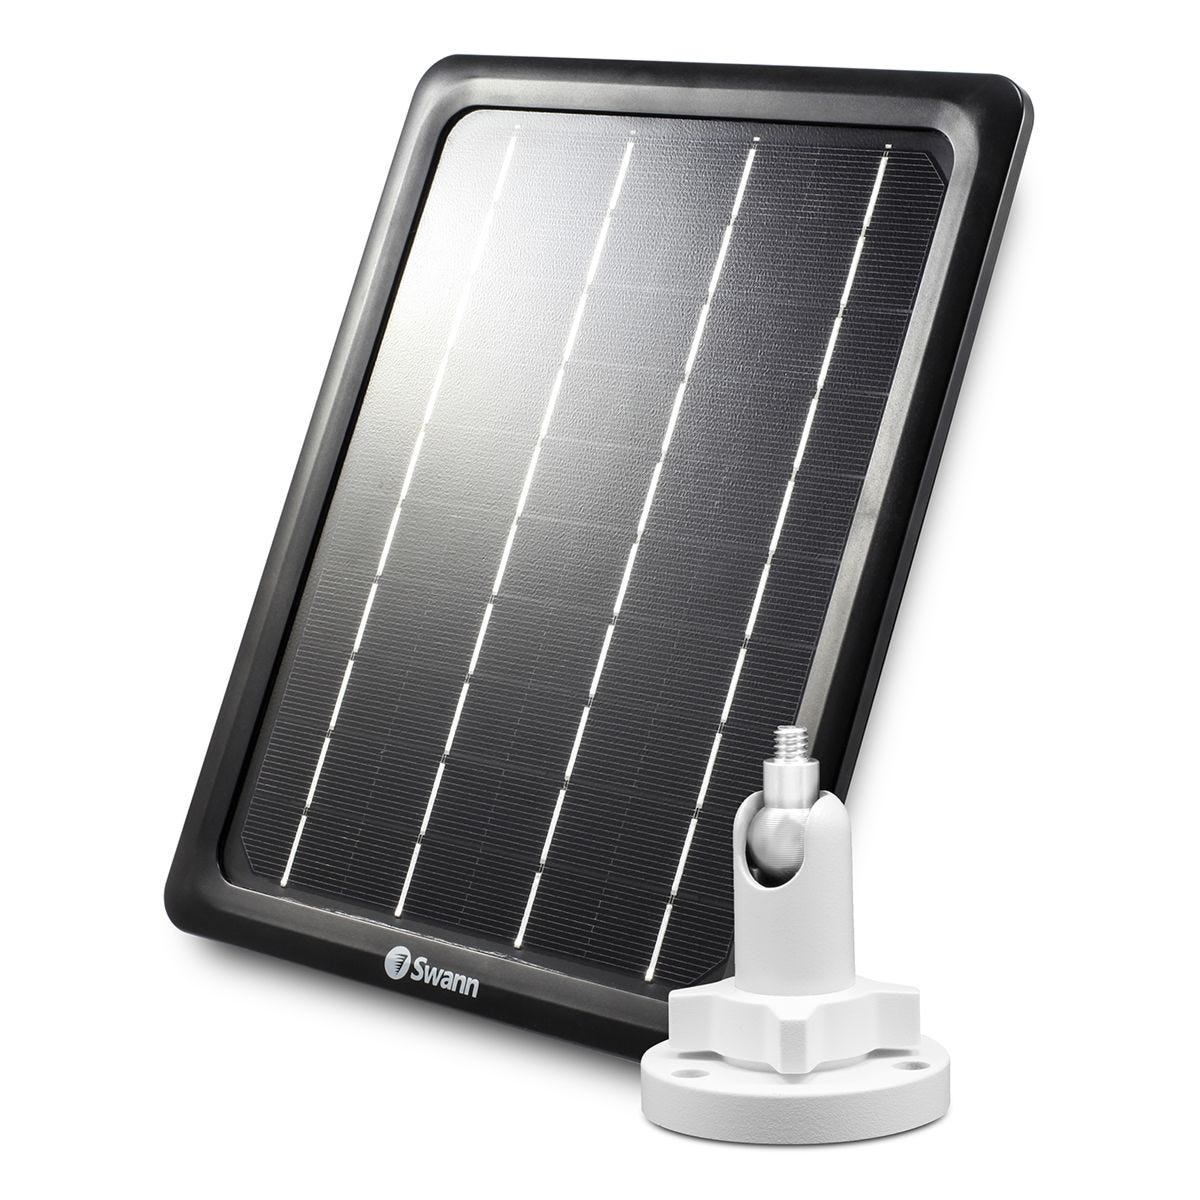 Swann Smart Outdoor Weatherproof Camera Solar Charging Panel